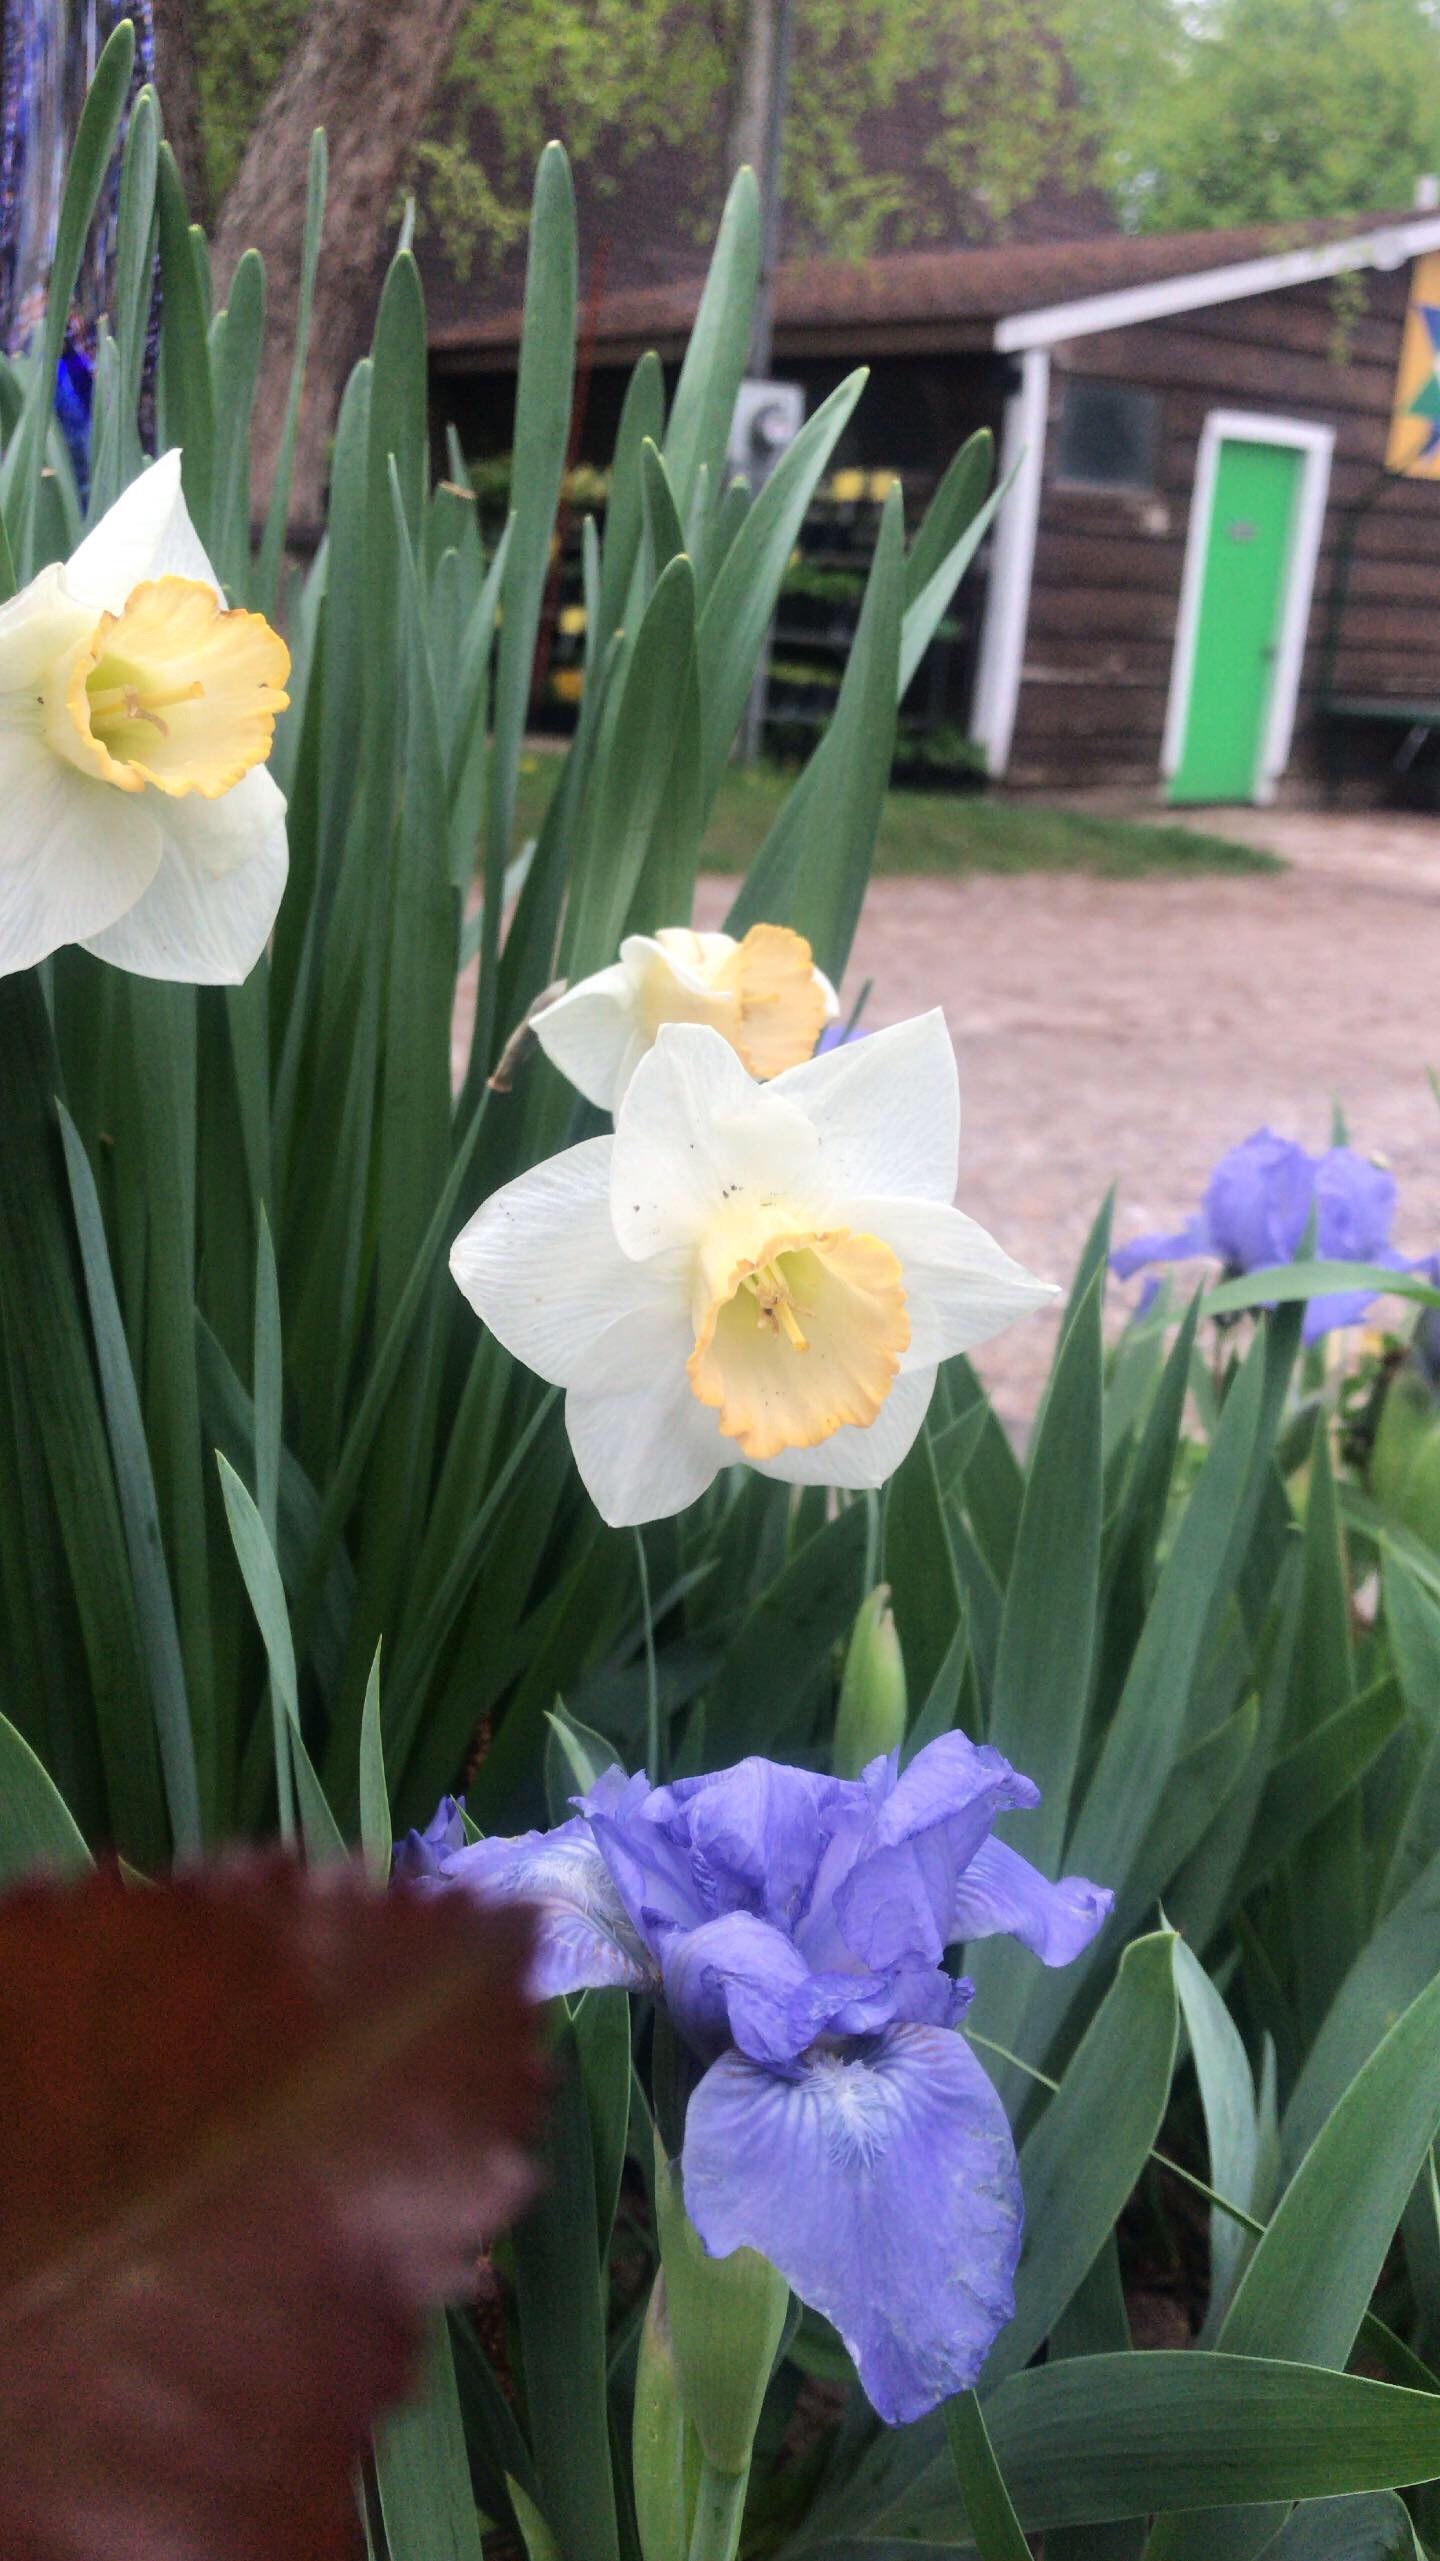 Daffodils and irises make a lovely combination.